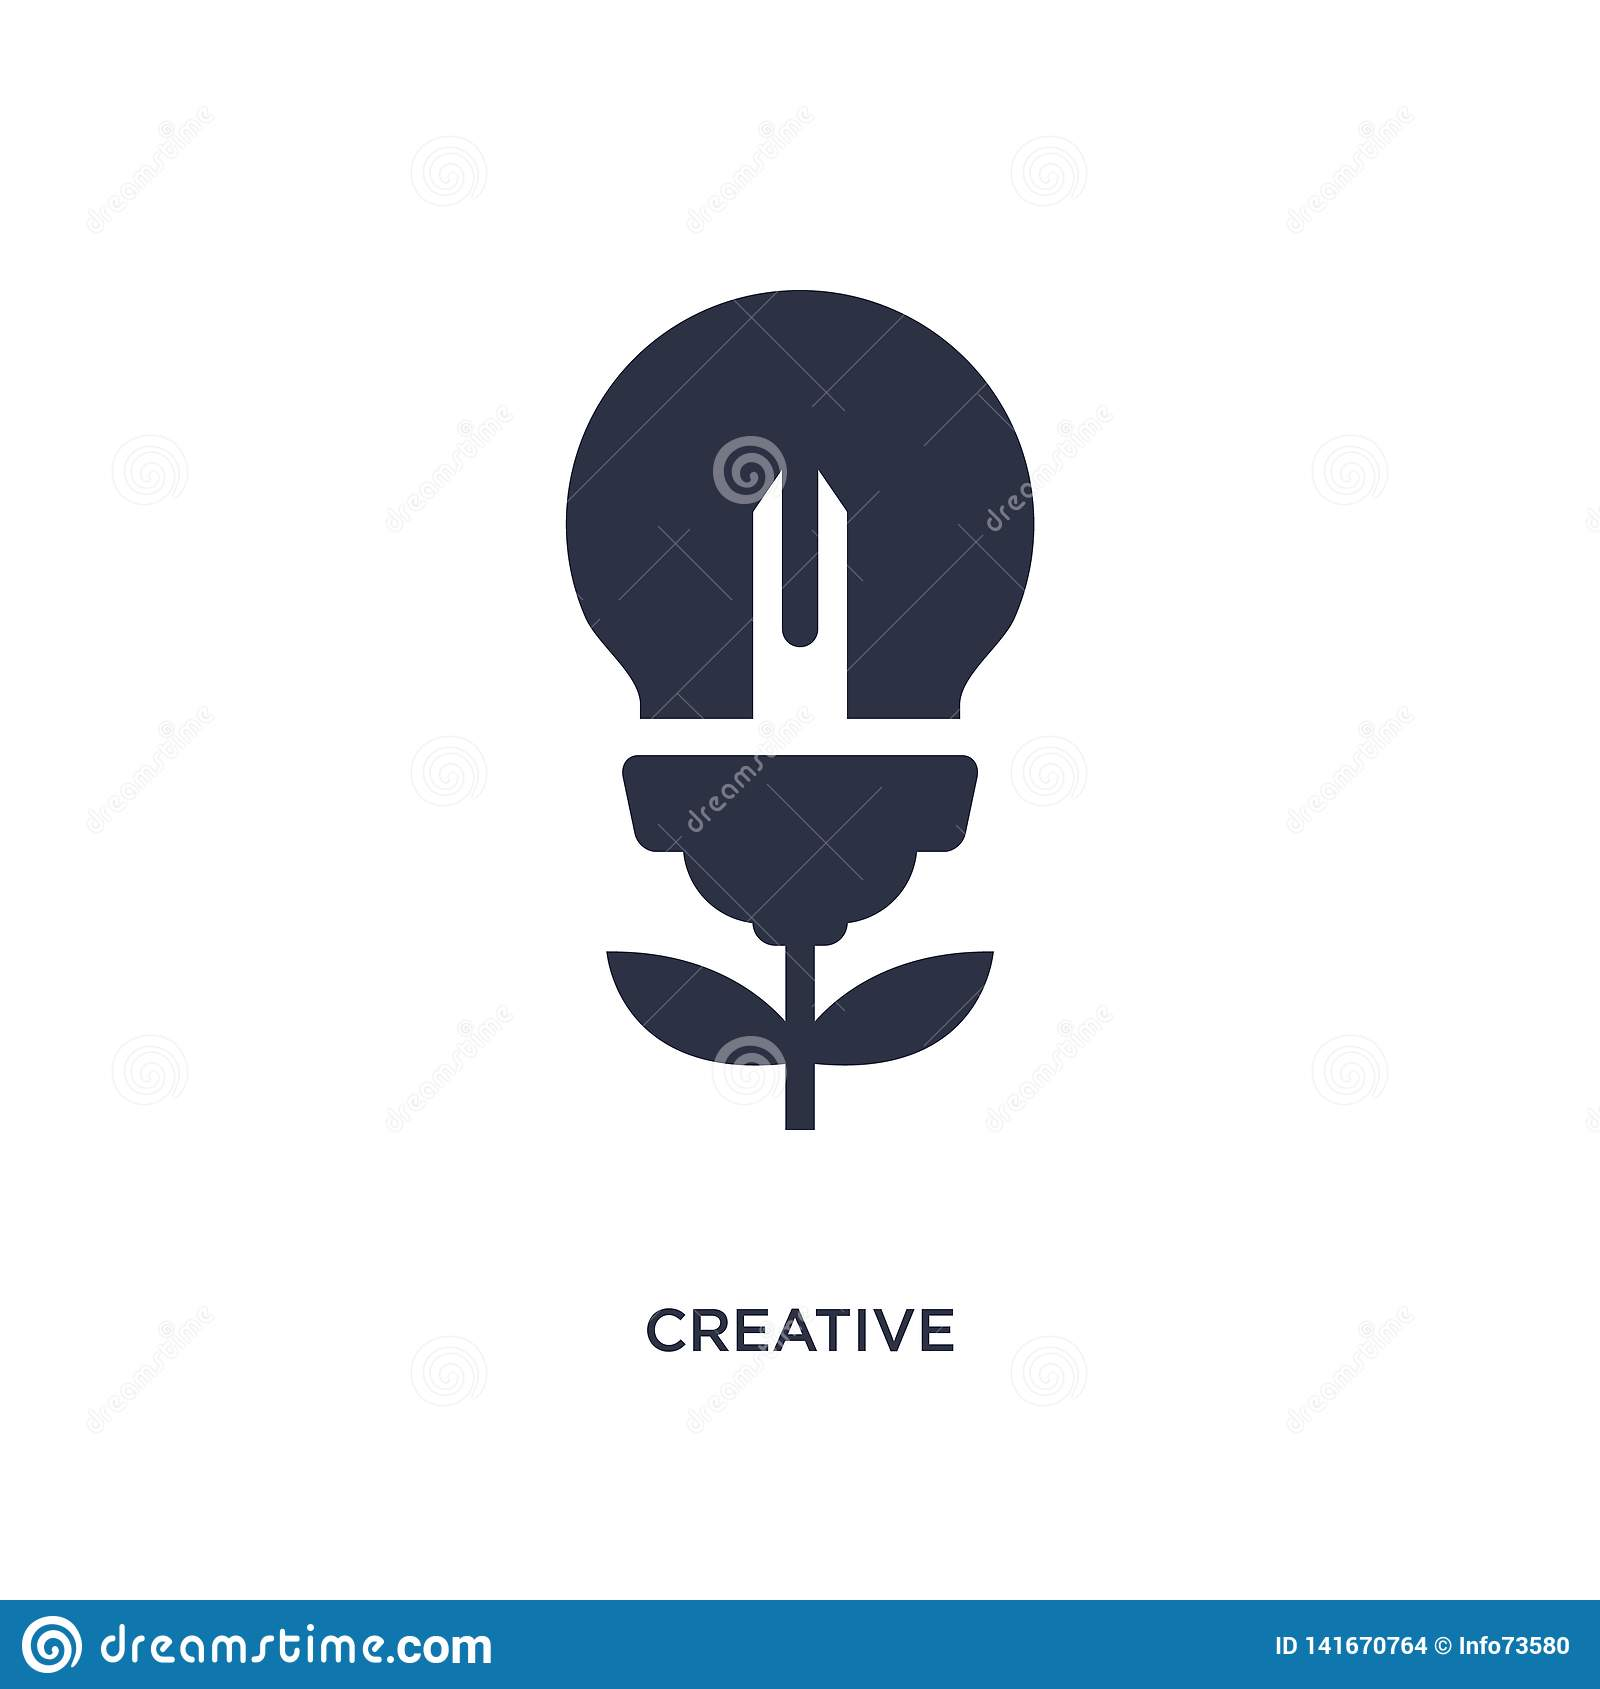 creative icon on white background. Simple element illustration from creative pocess concept